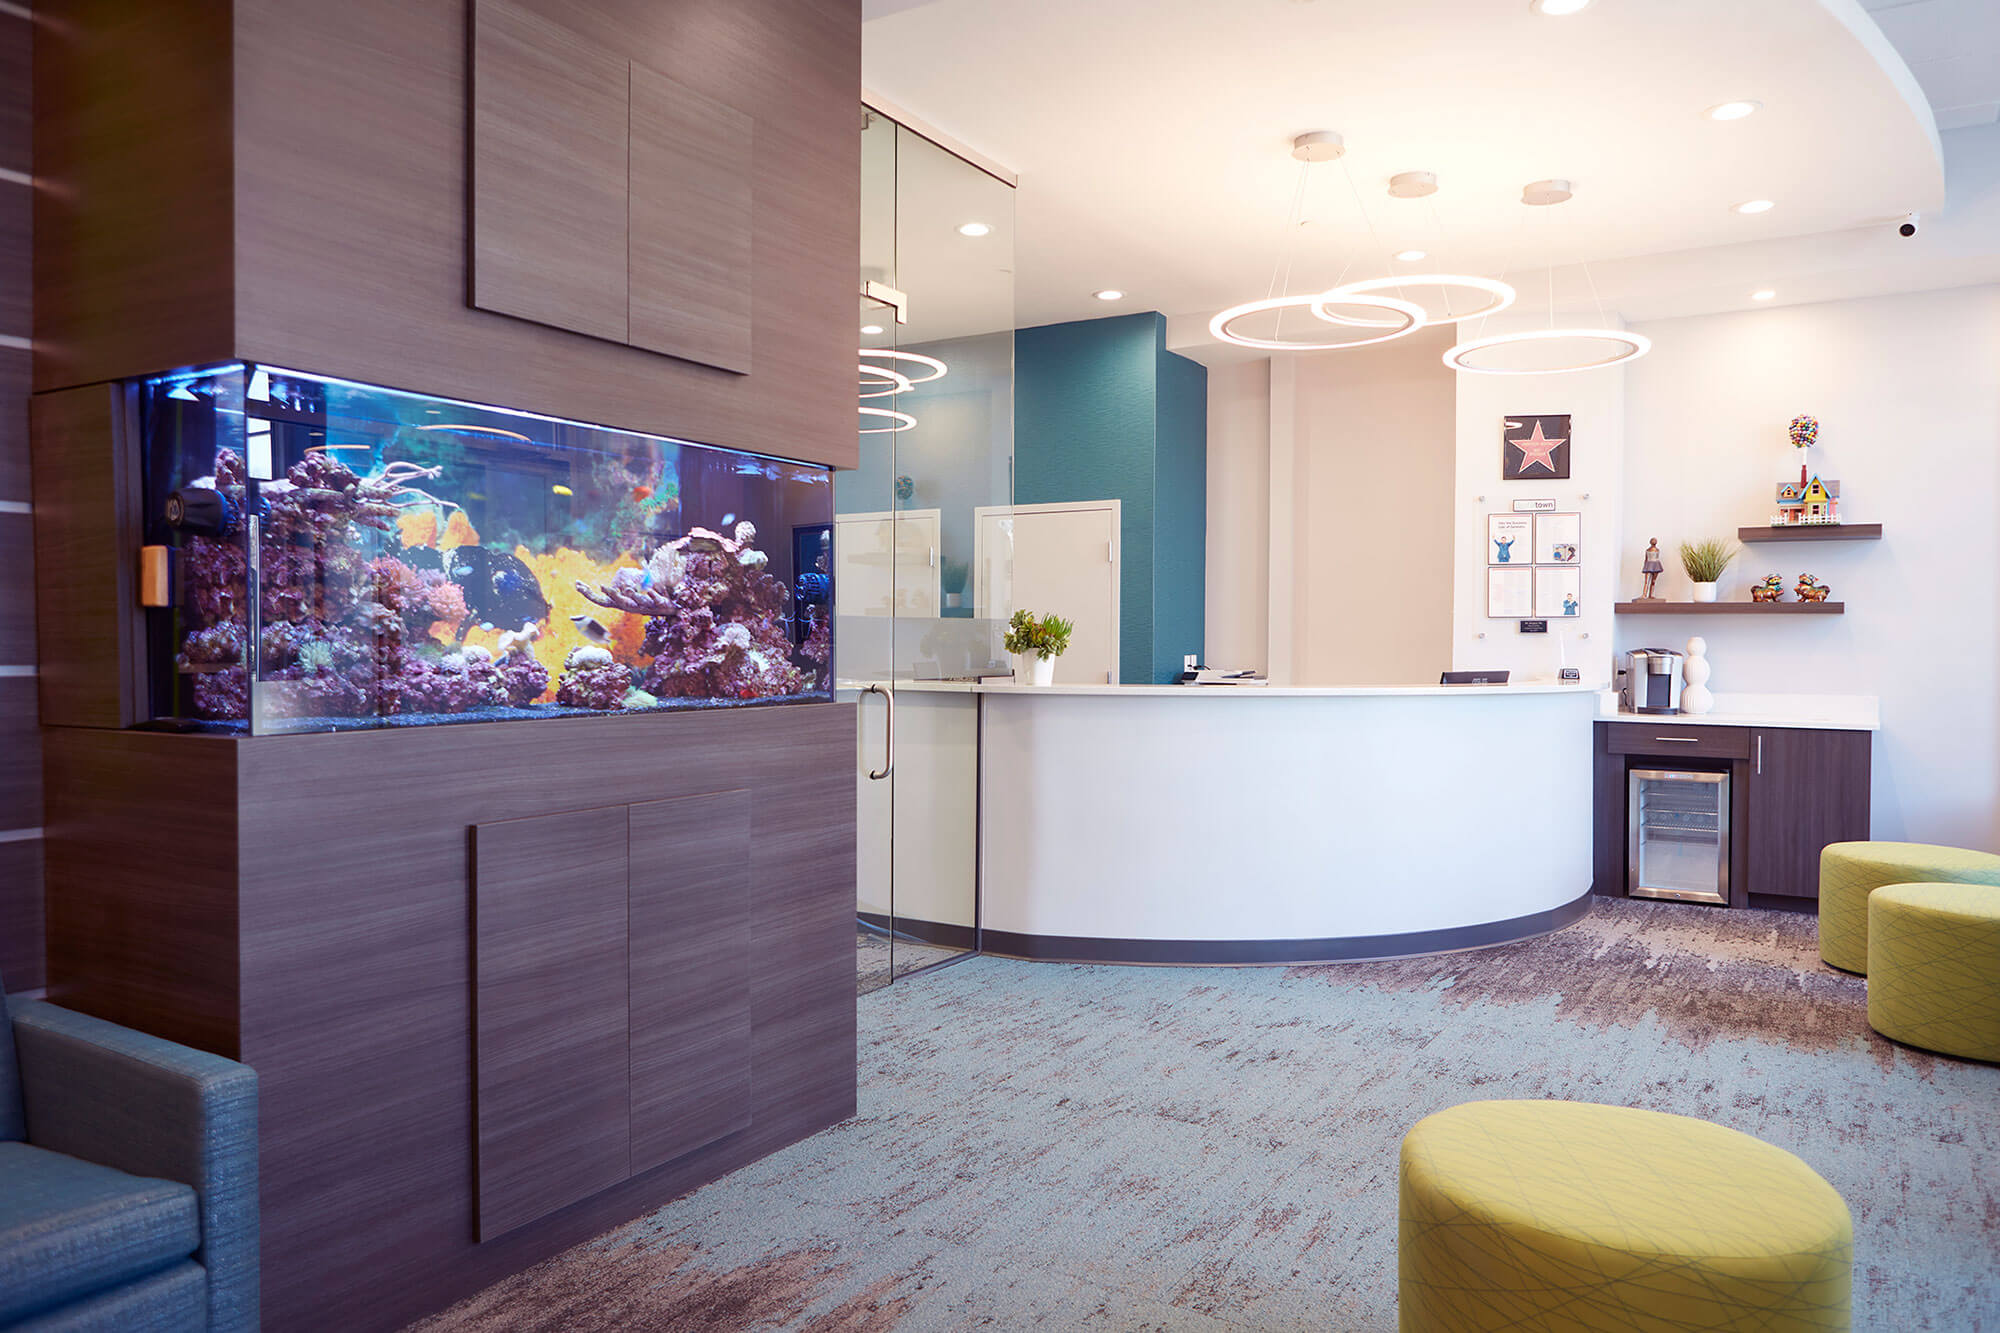 lobby of dental office with fish tank, coffee station and round yellow ottomans